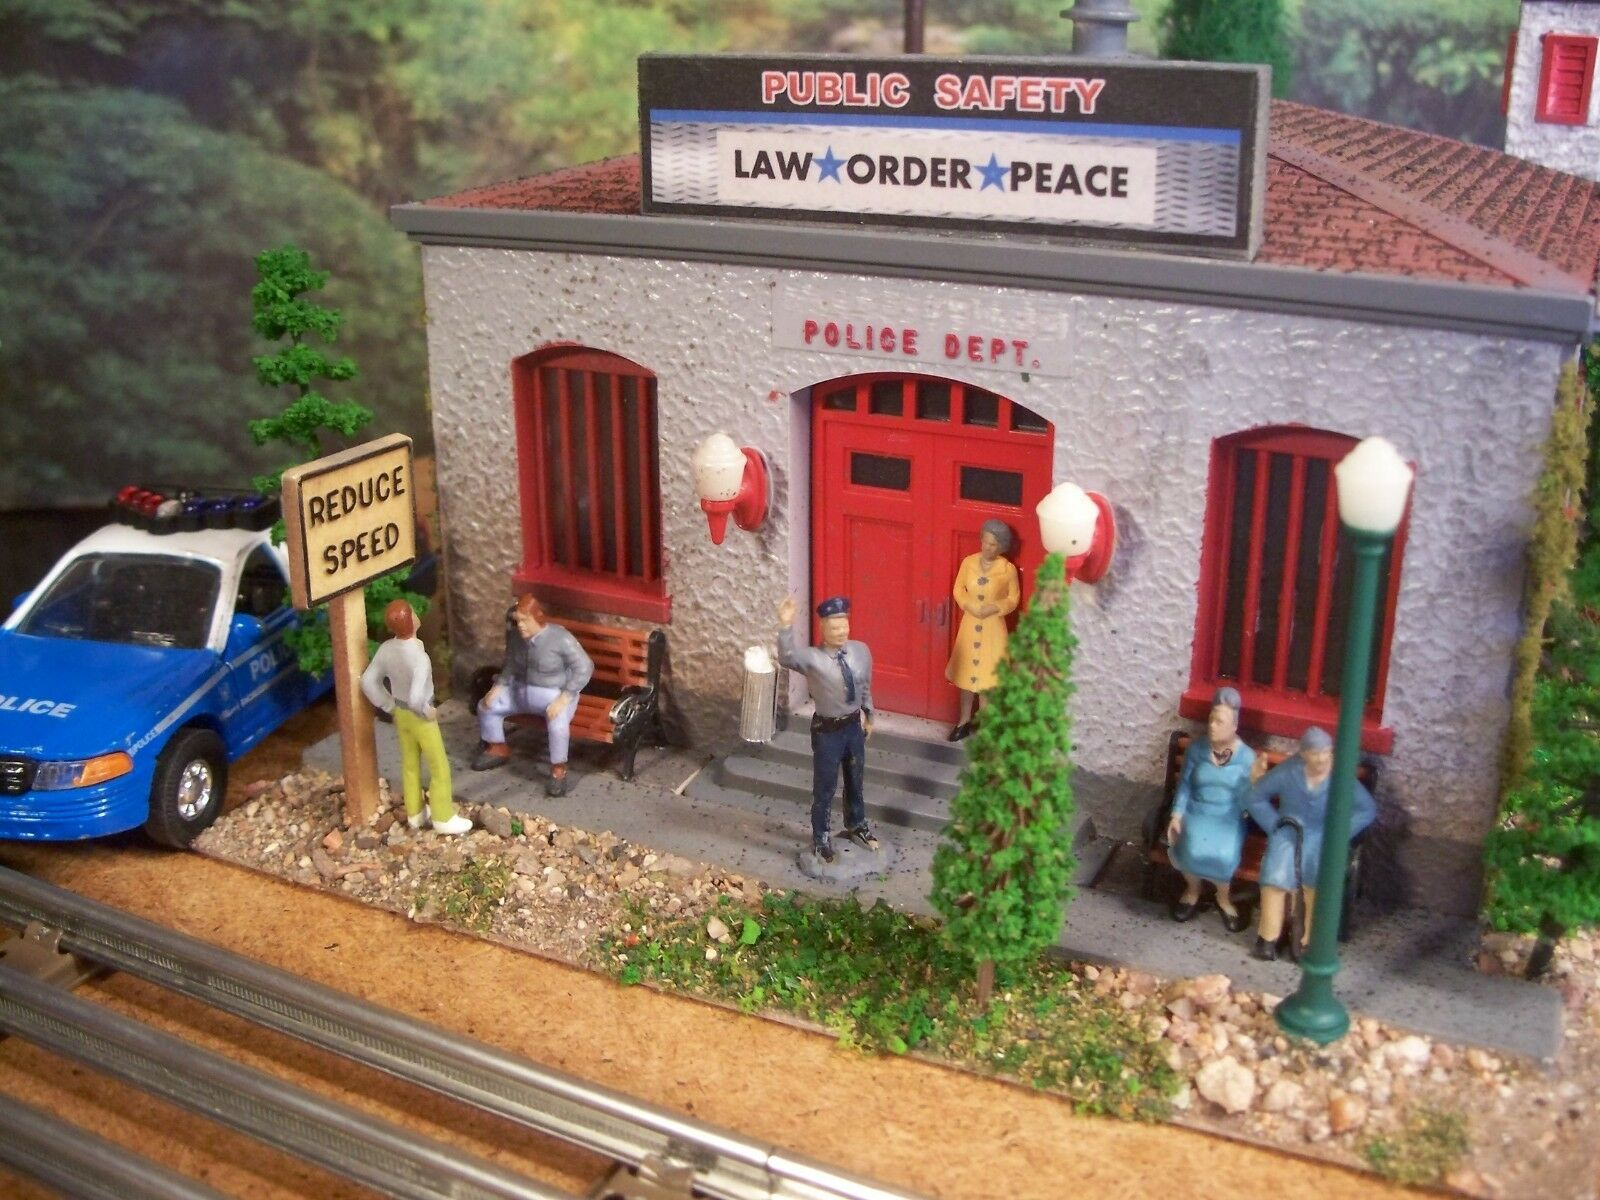 O SCALE DIORAMA BUILT DETAILED POLICE DEPT. STATION BUILDING WEATHERED ASSEMBLED